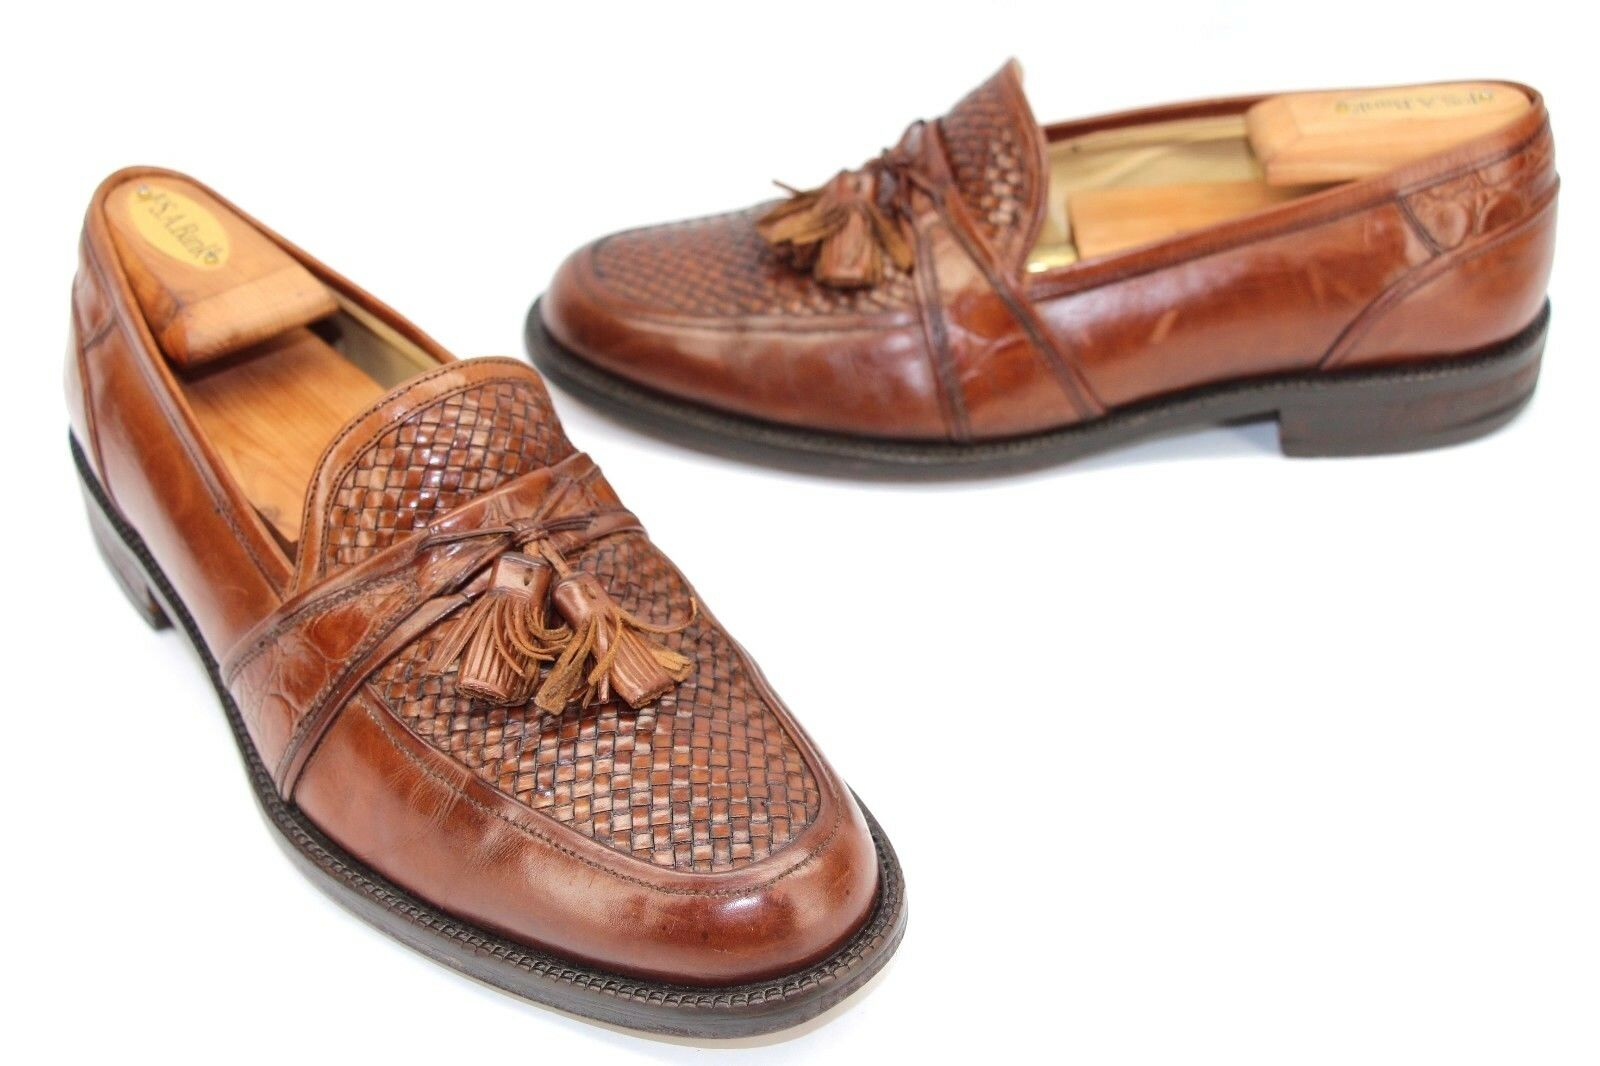 Johnston & Murphy Brown Pelle Woven Vamp Tassel Loafers Size 9 M Made In Italy